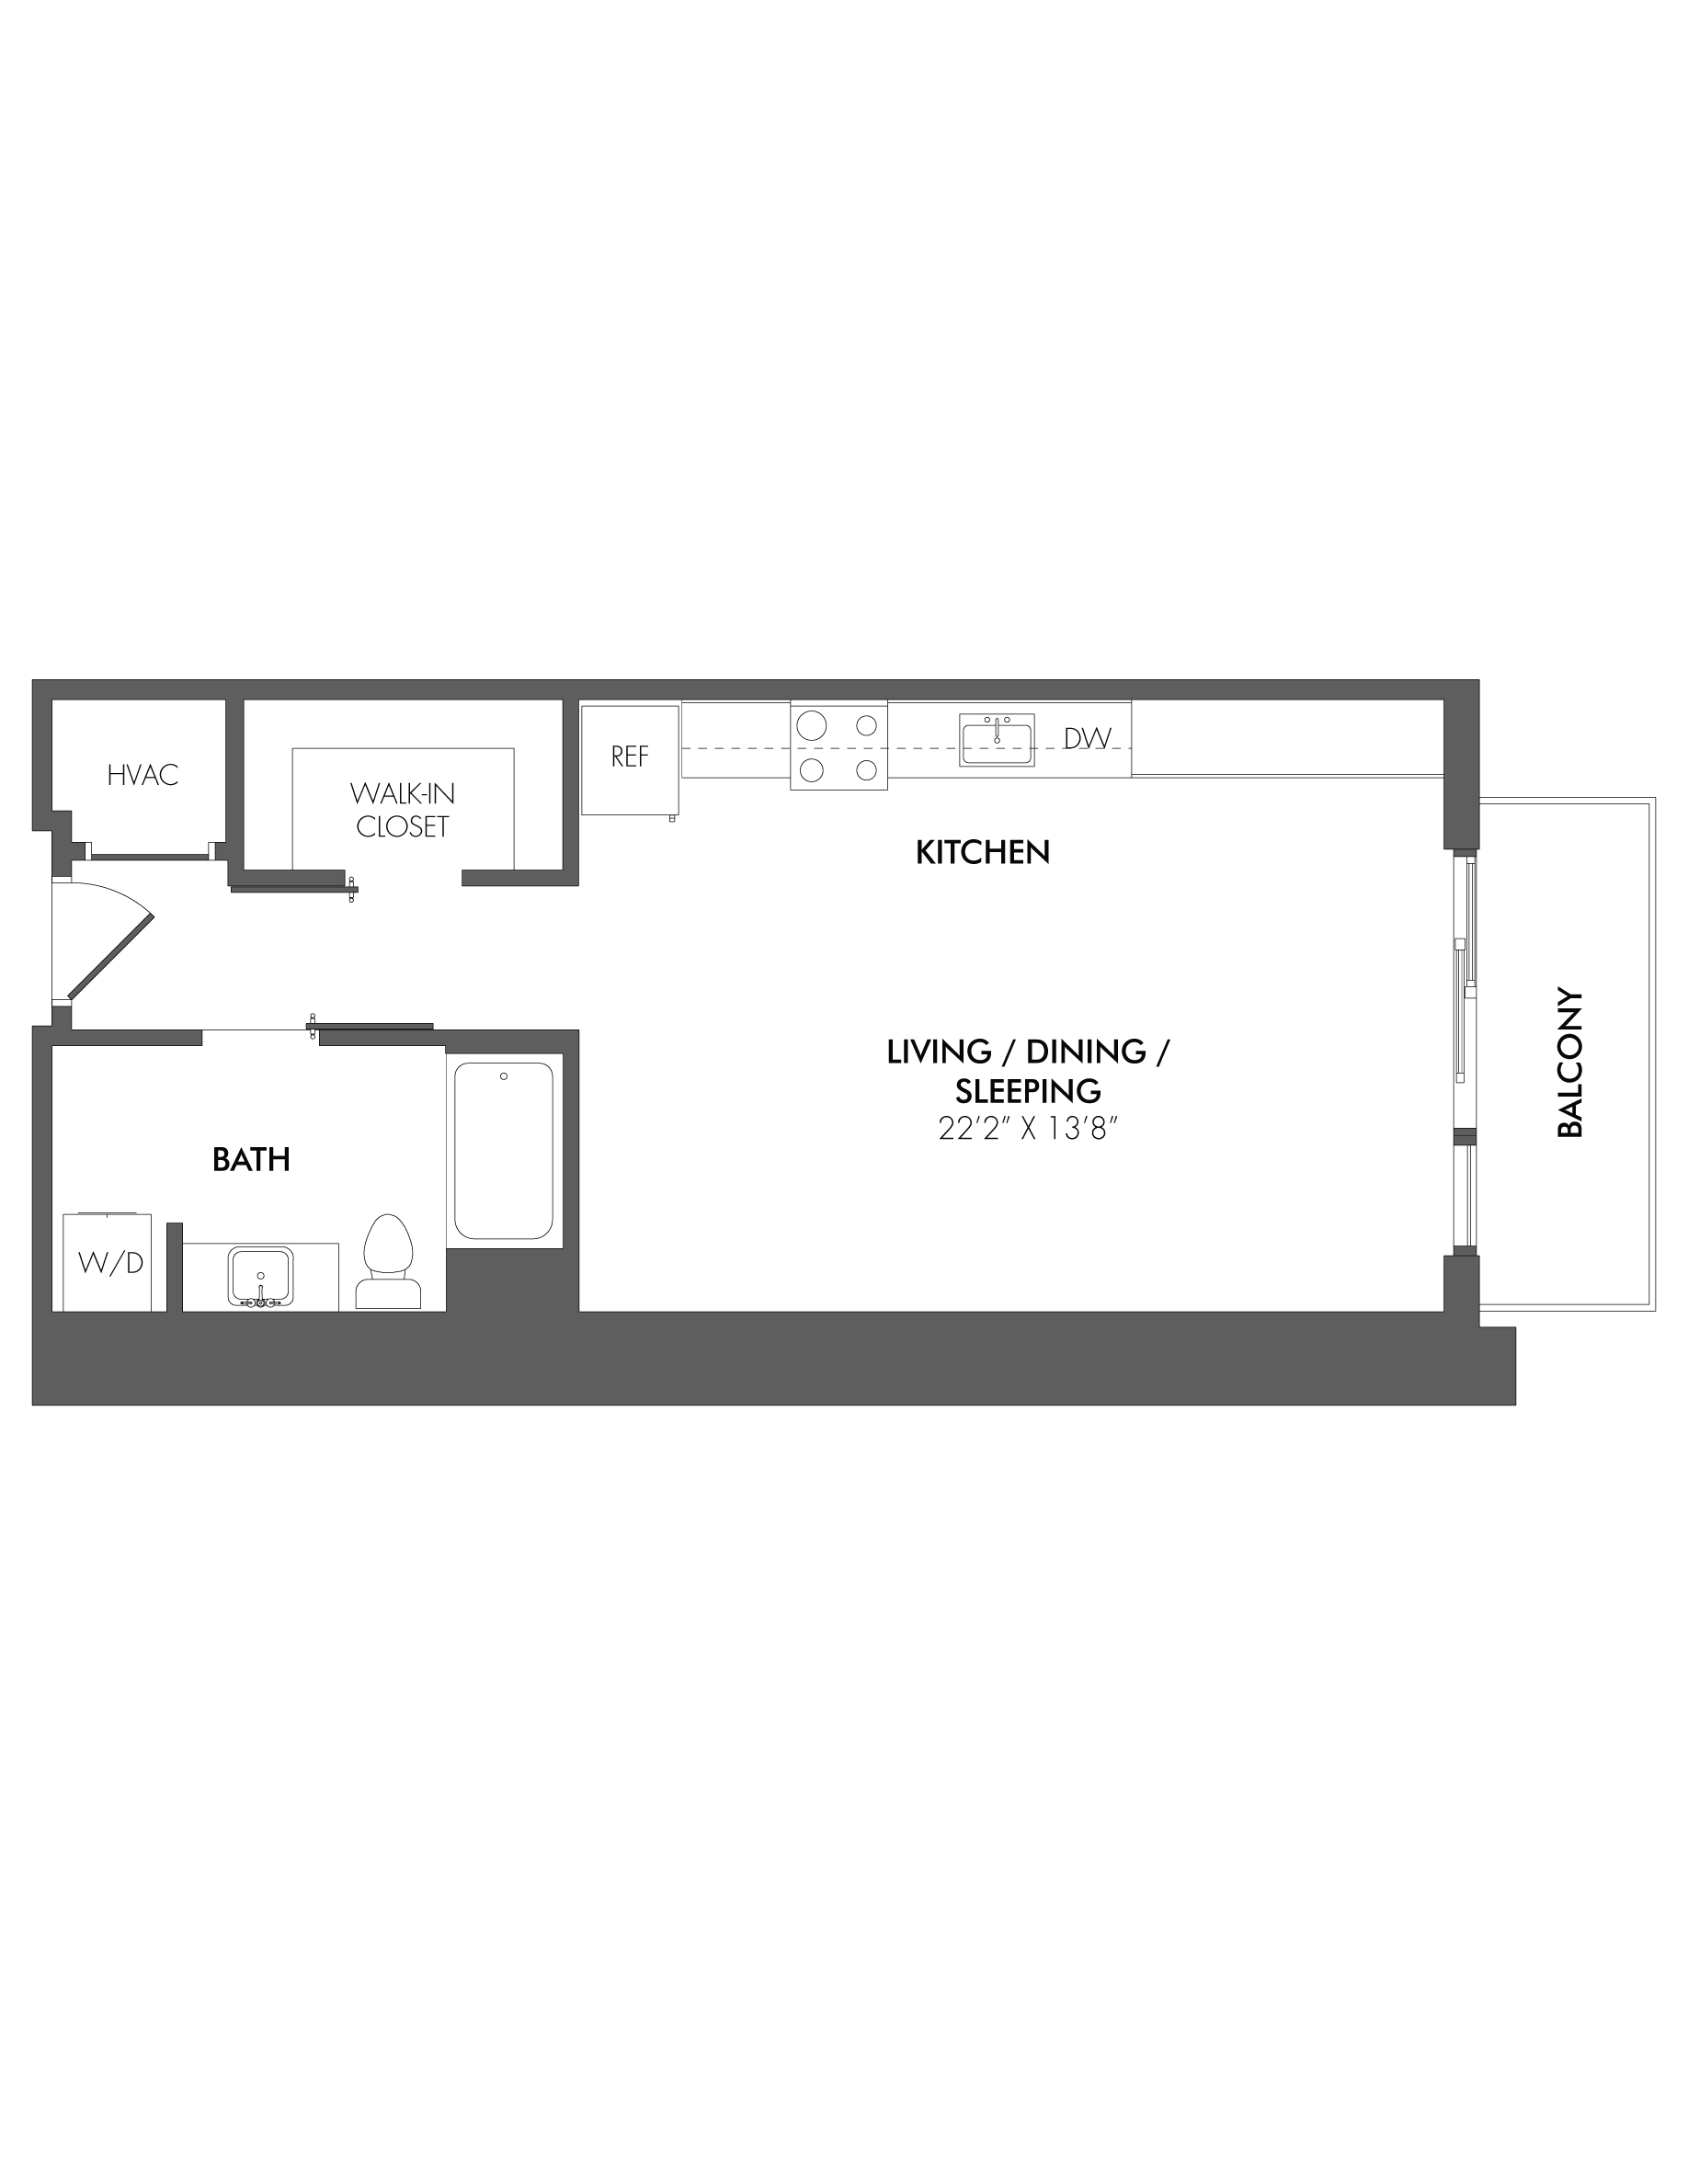 Apartment 1603 floorplan